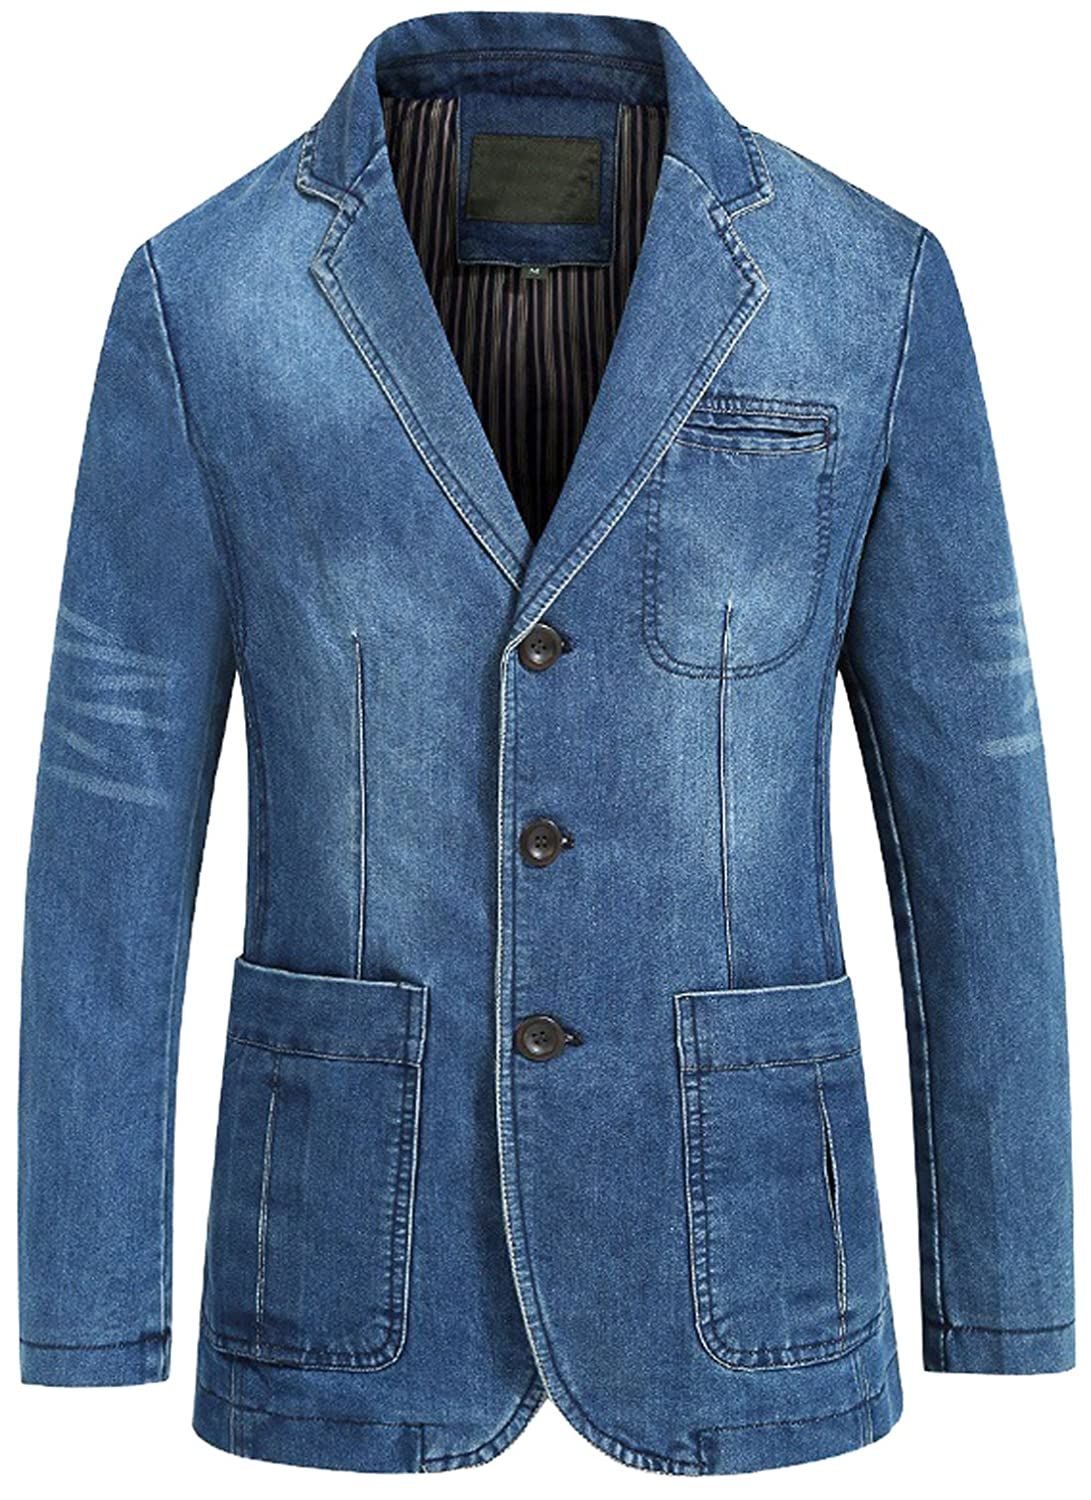 Chouyatou Men's Classic Notched Collar 3 Button Tailoring Distressed Denim Blazer Jacket